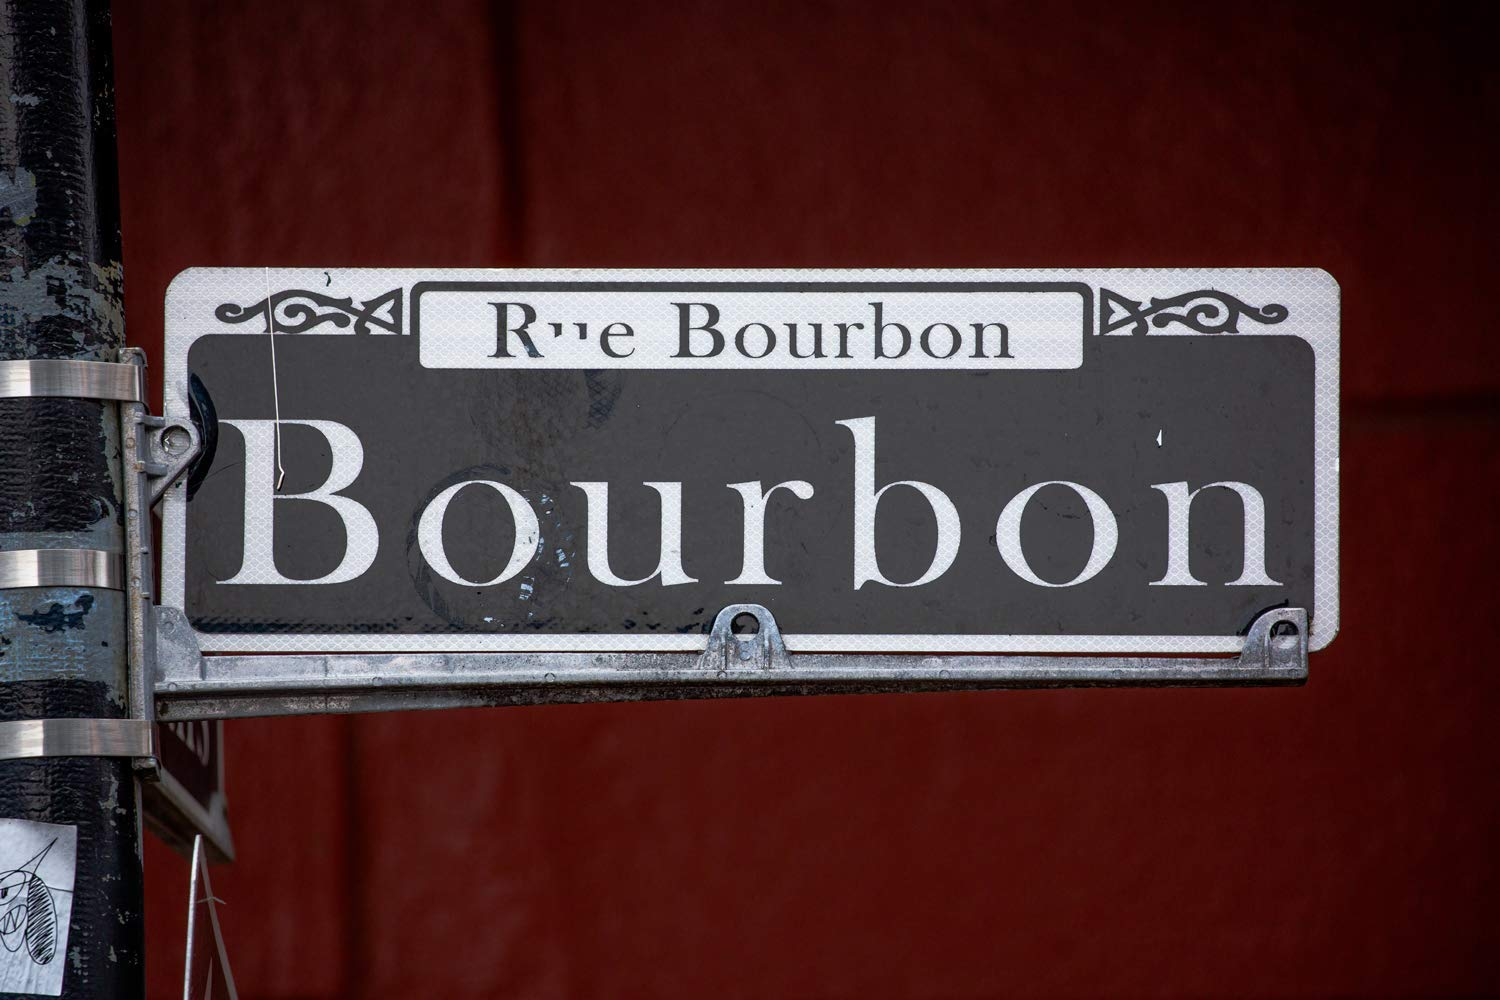 Picture of Bourbon Street Sign in French Quarter Louisiana Mardi Gras Decor 5x7 to 40x60 New Orleans Photography Art Print